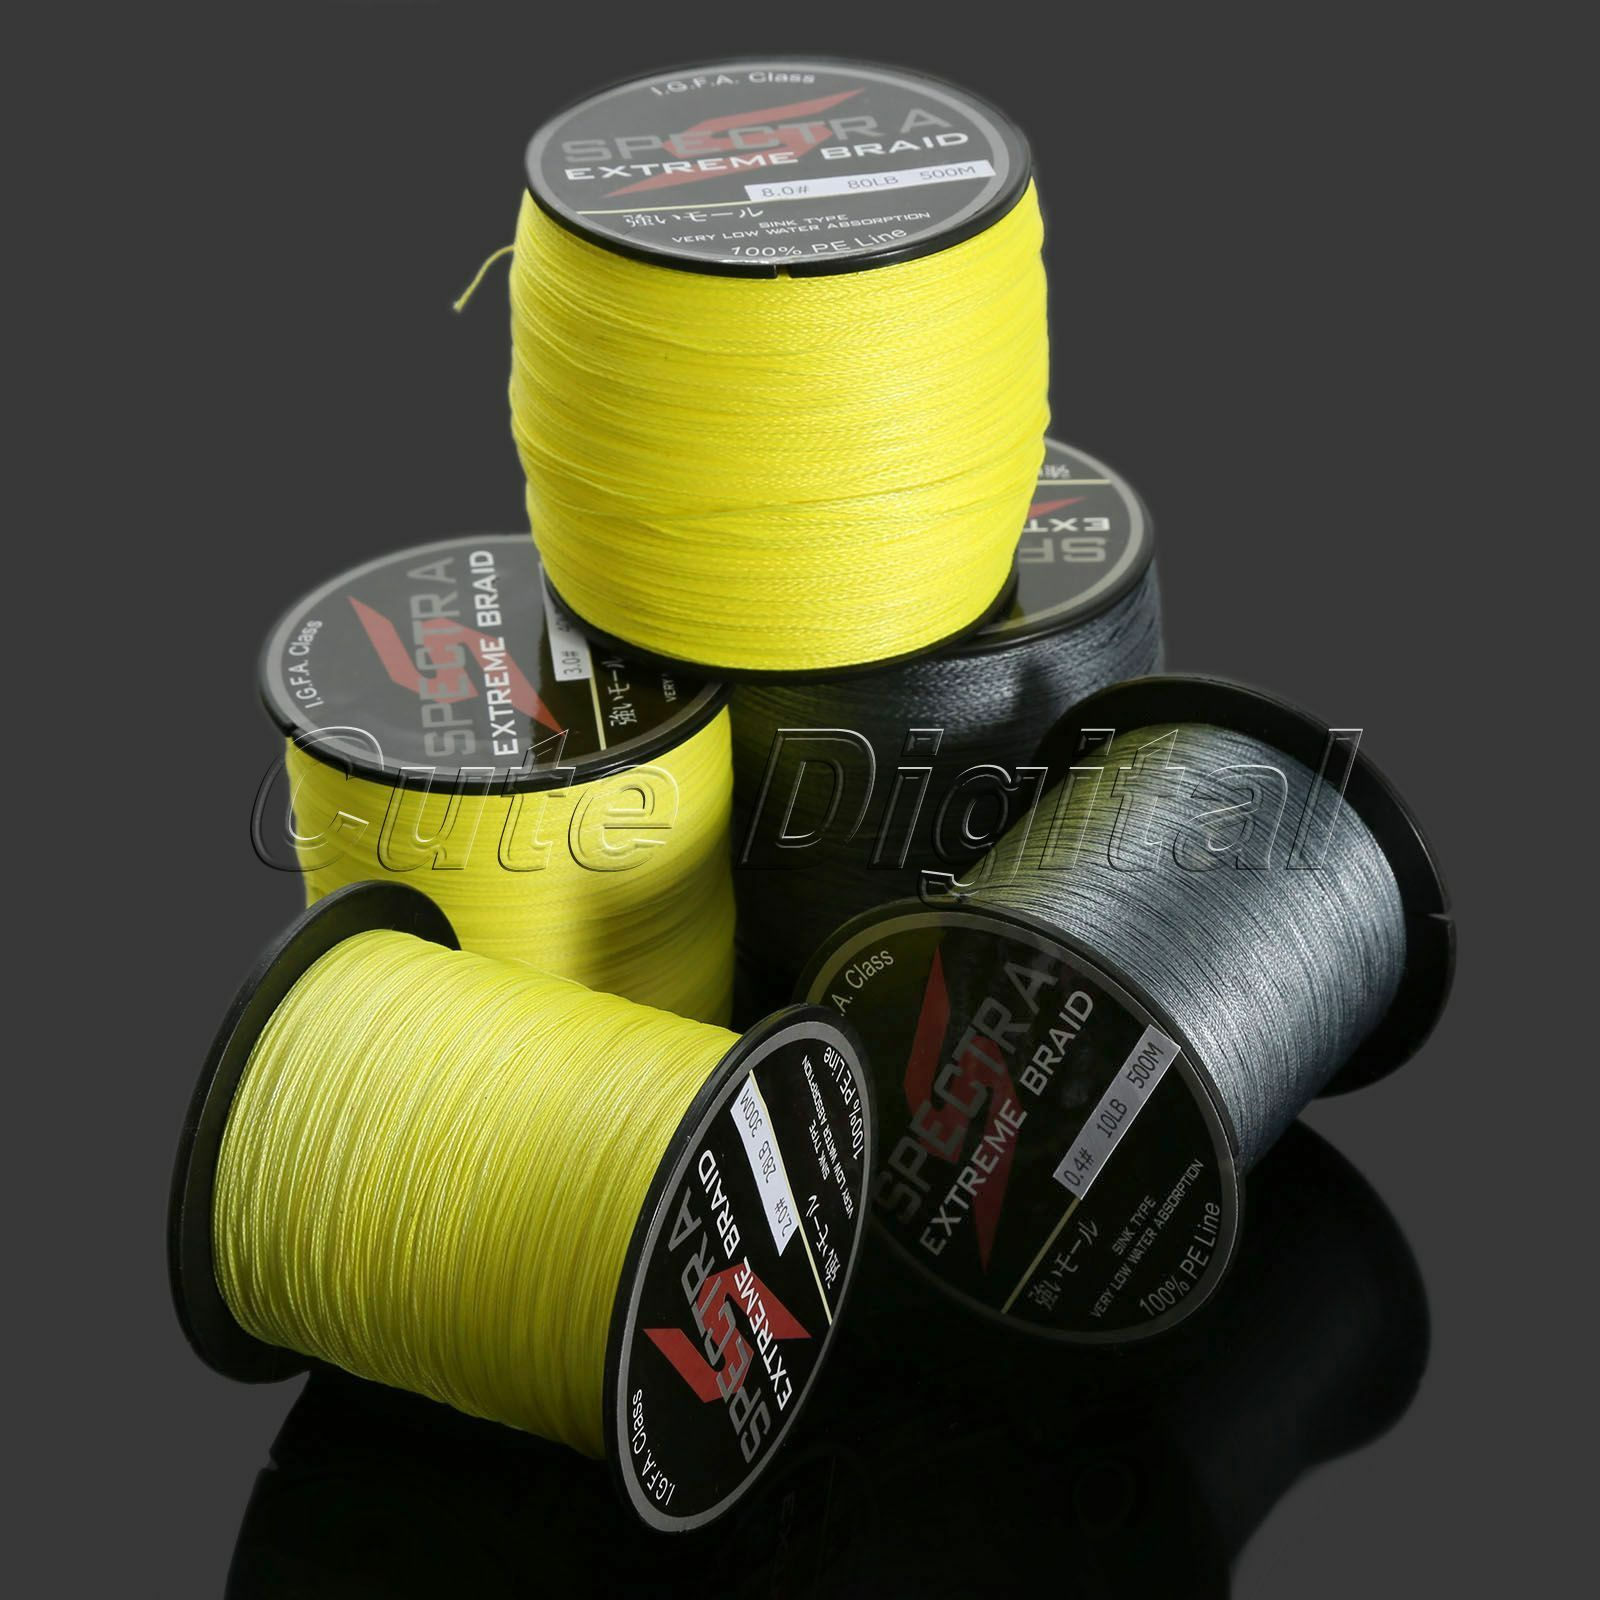 Spectra Strong Power PE Dyneema Extreme Braid Sea Fishing Line Strands 300 500M